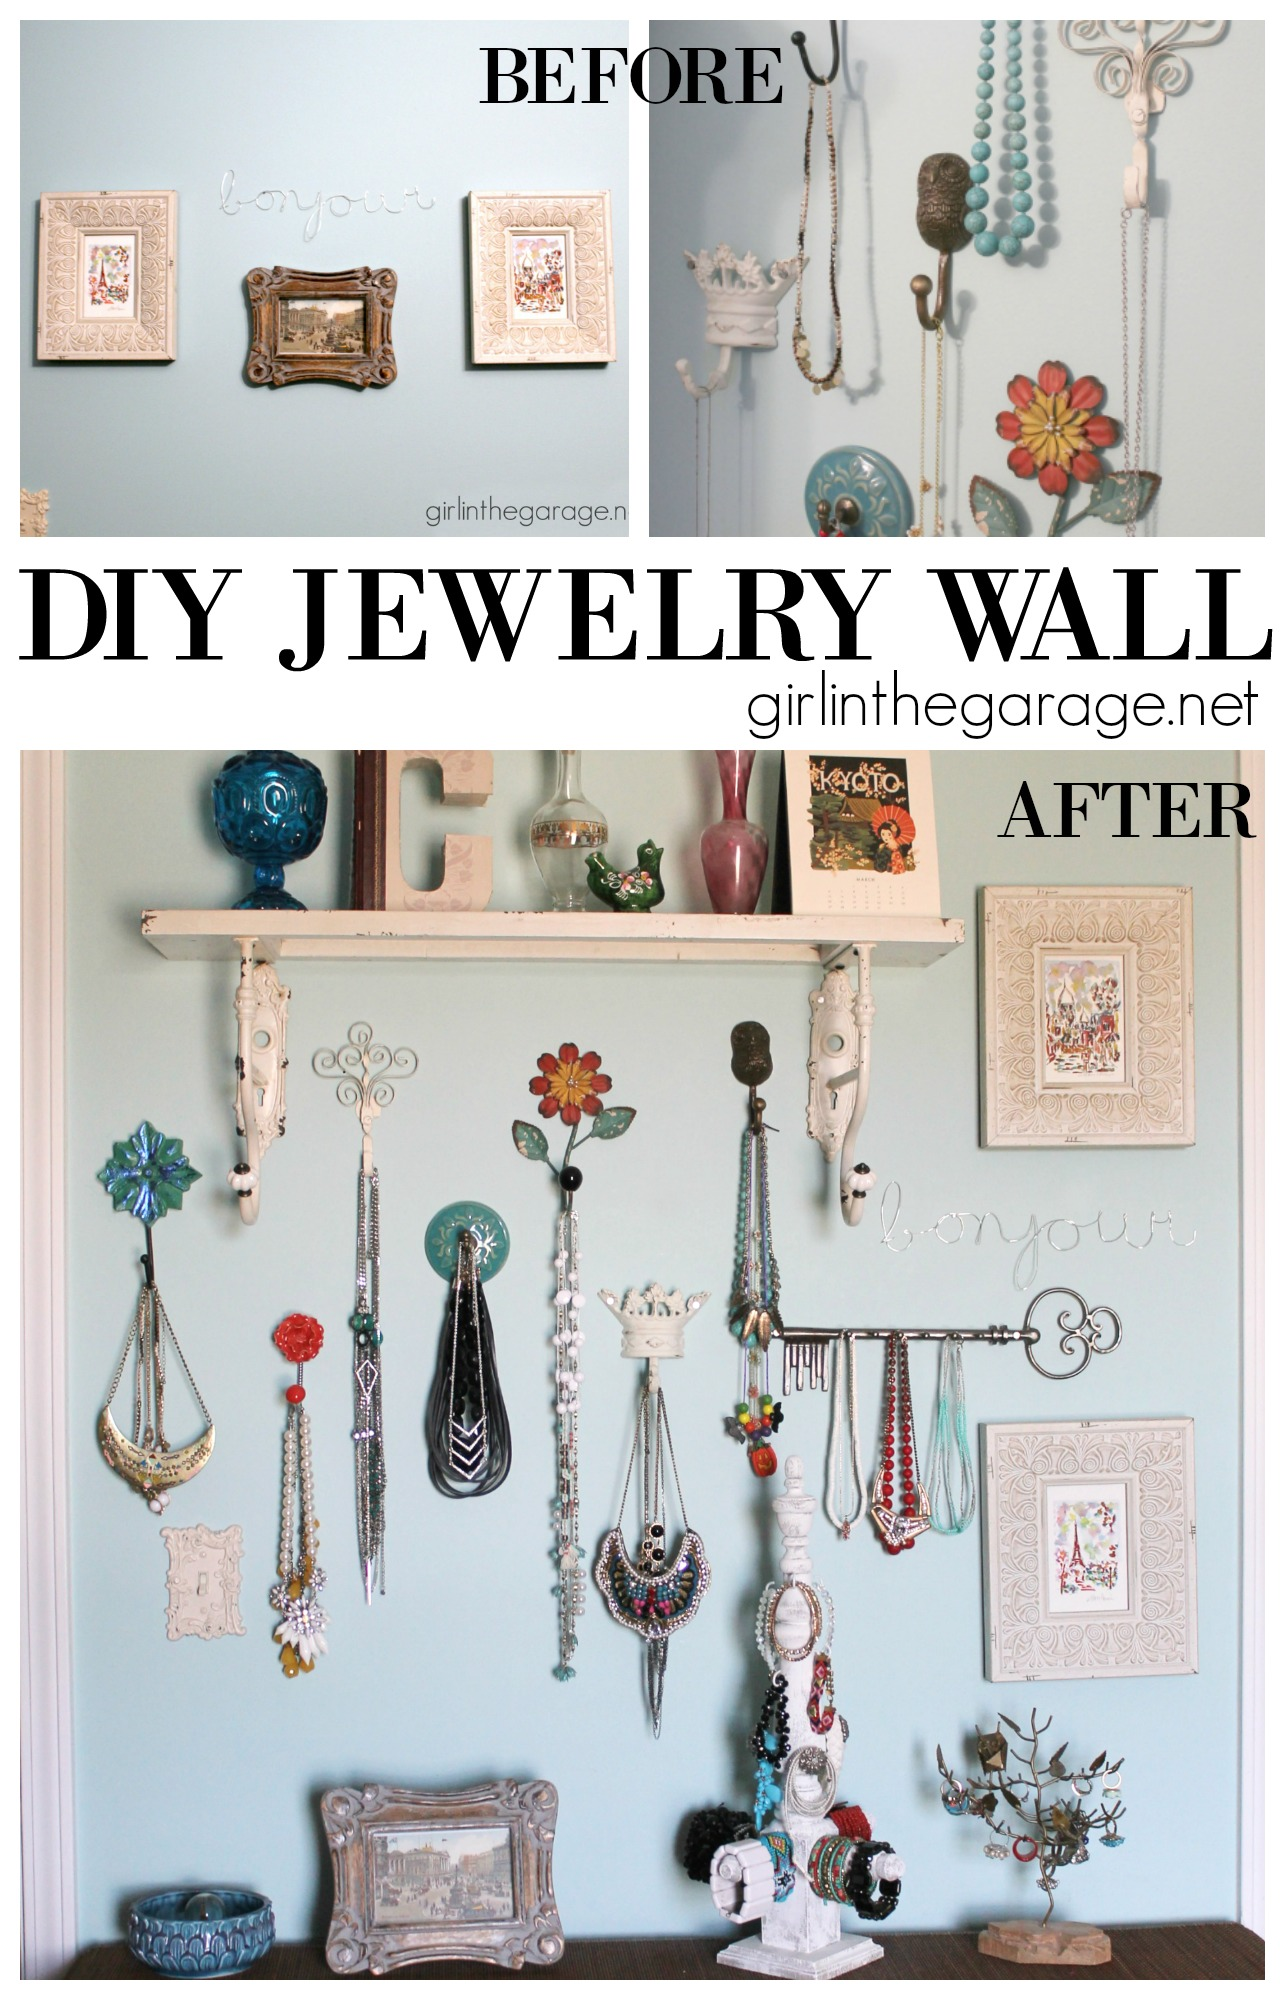 Diy Jewelry Wall Display Girl In The Garage 174